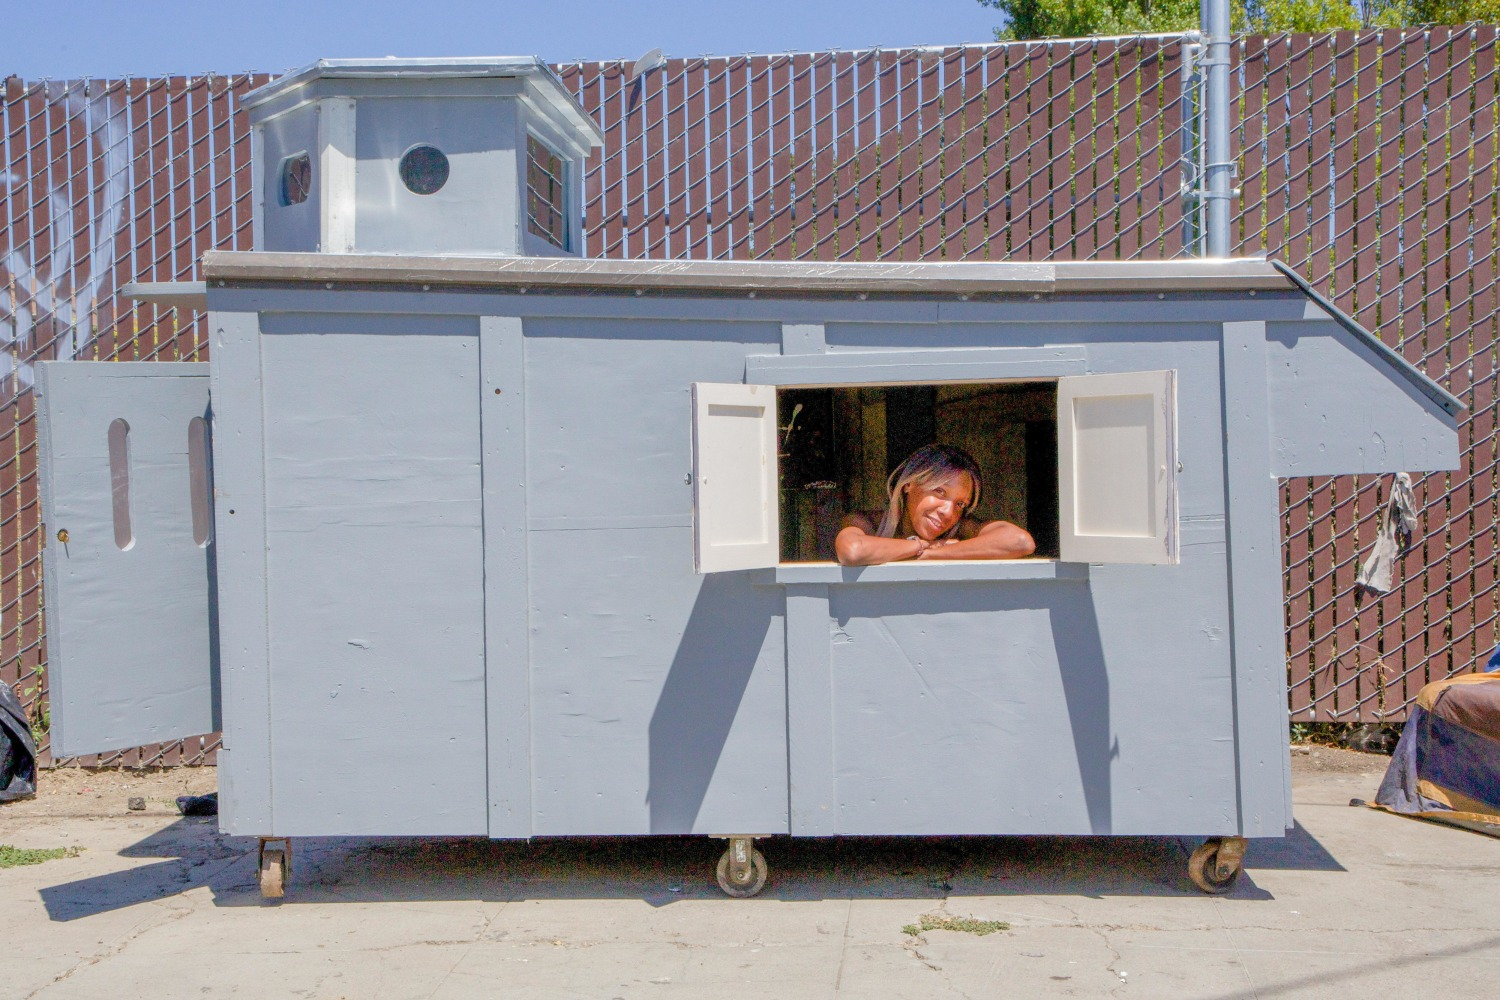 A Woman Is Seen In Shelter Built By California Artist Gregory Kloehn